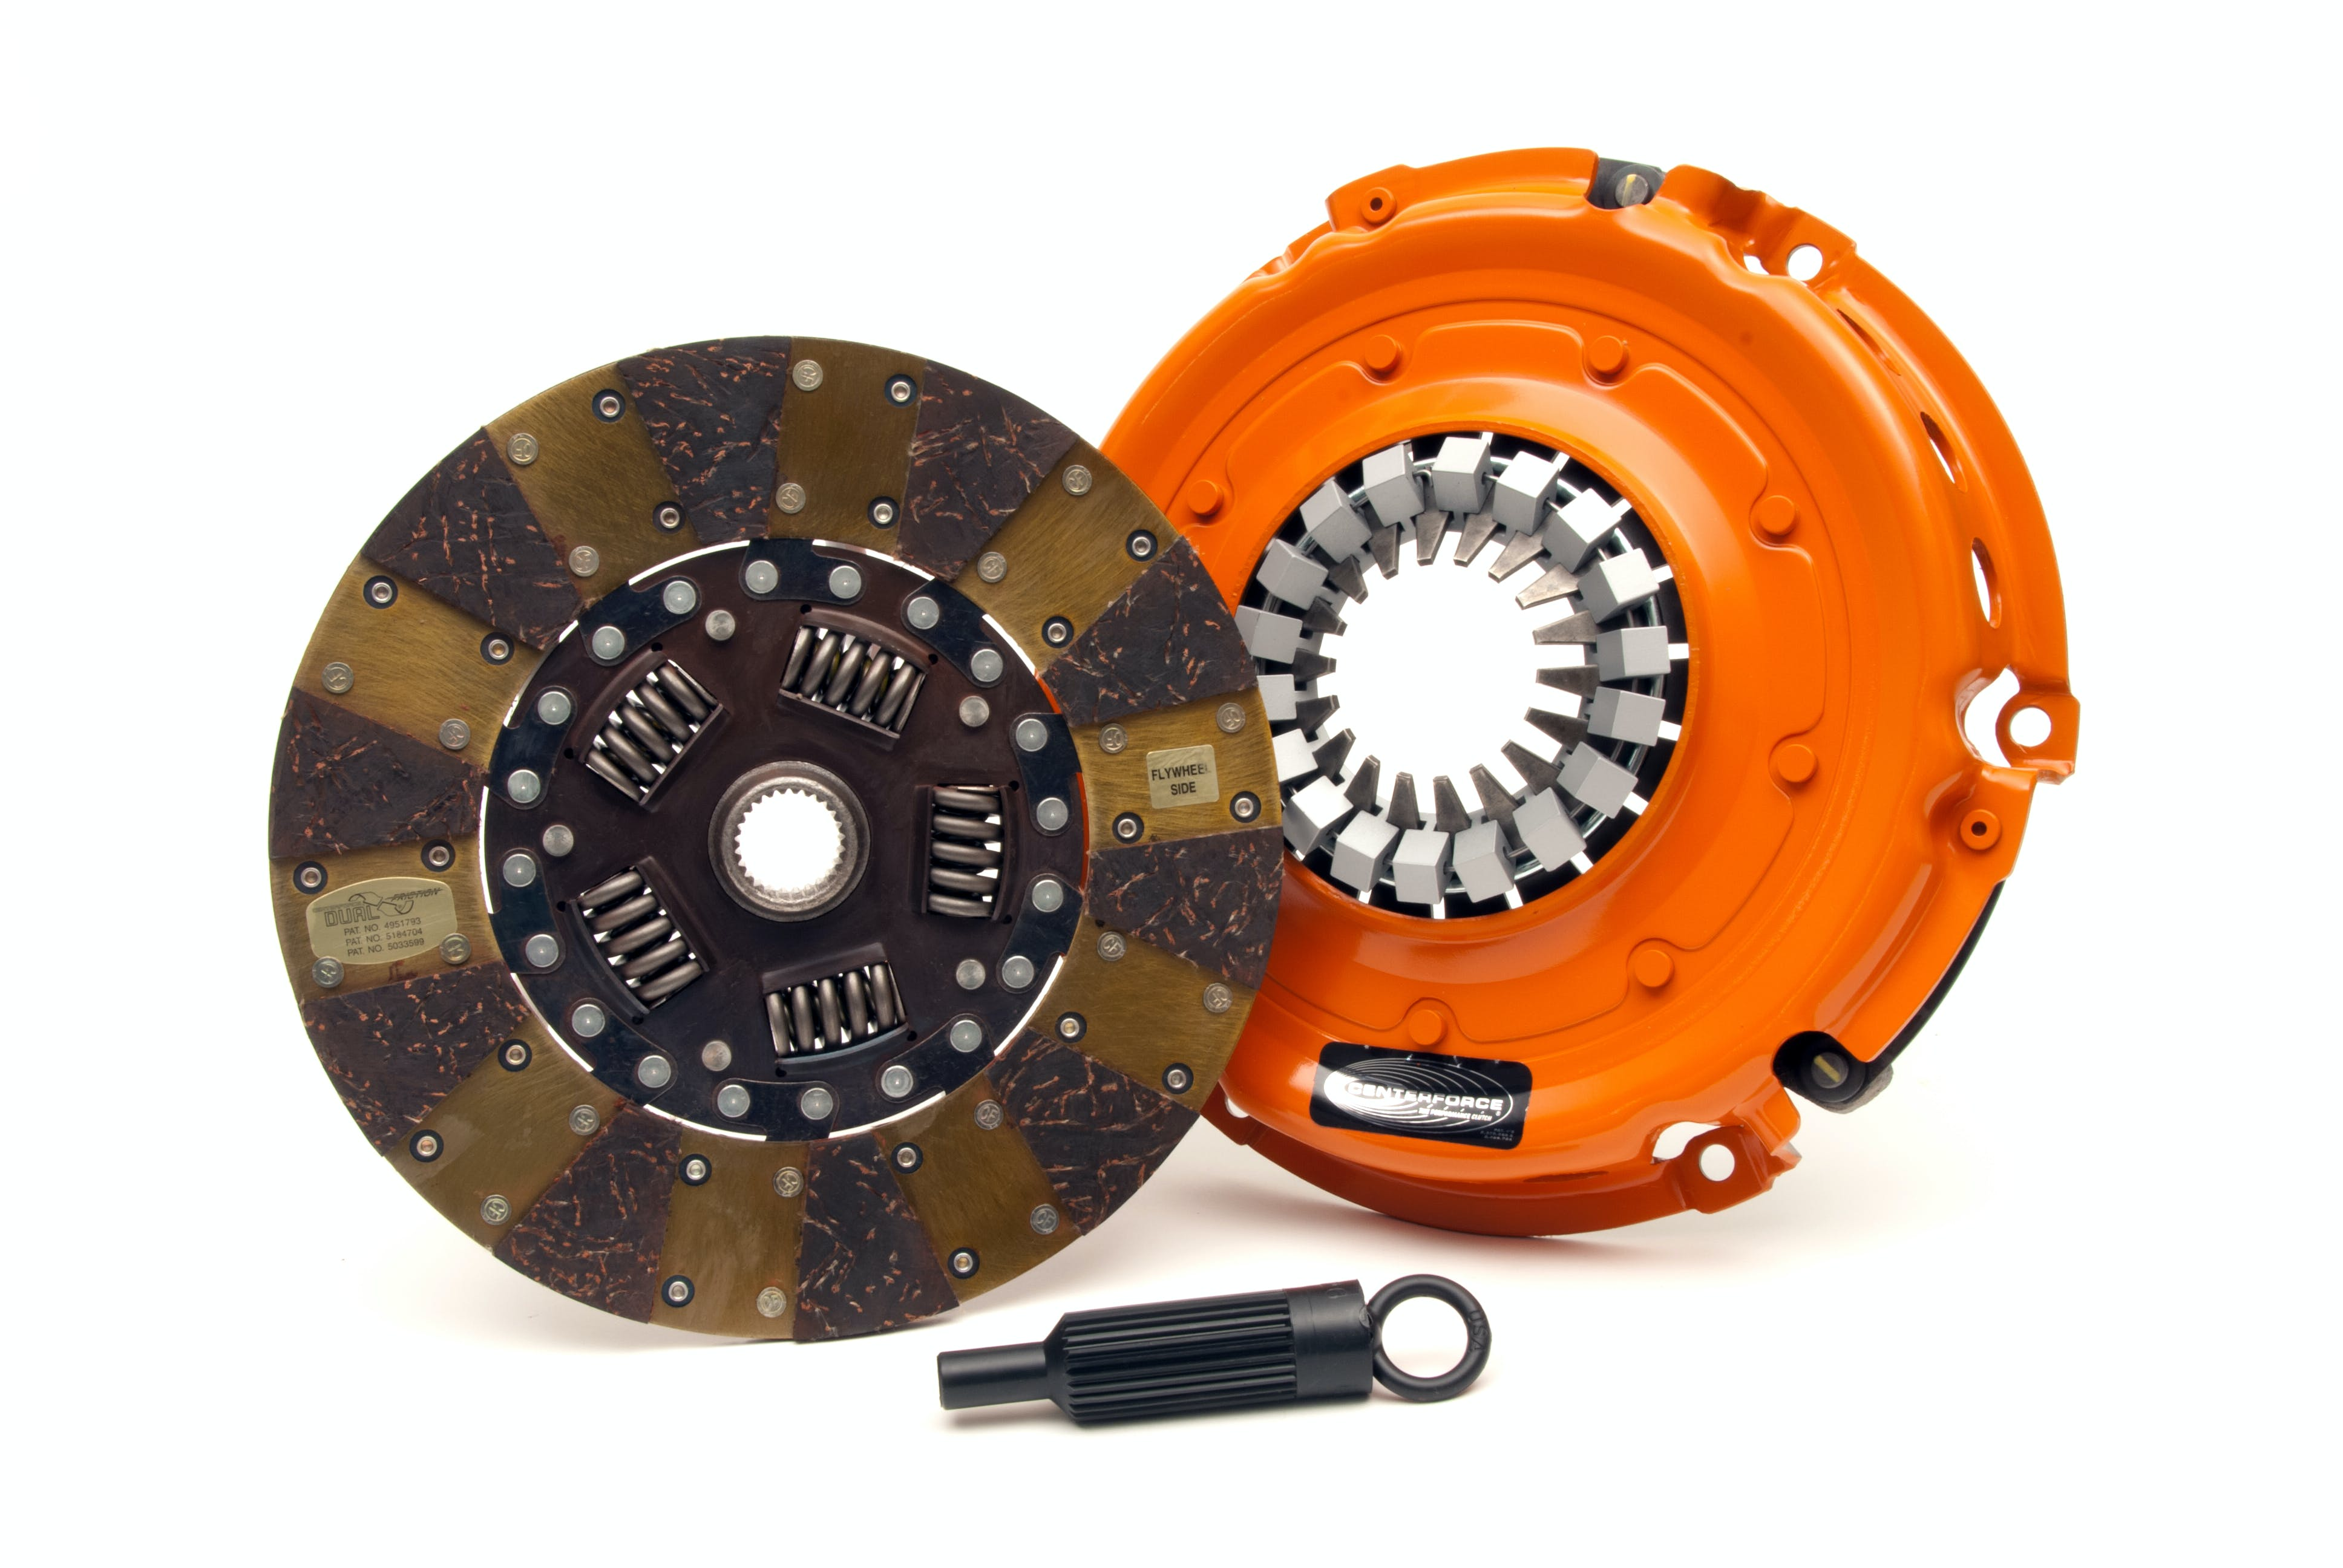 Centerforce DF920830 Dual Friction Clutch Pressure Plate and Disc